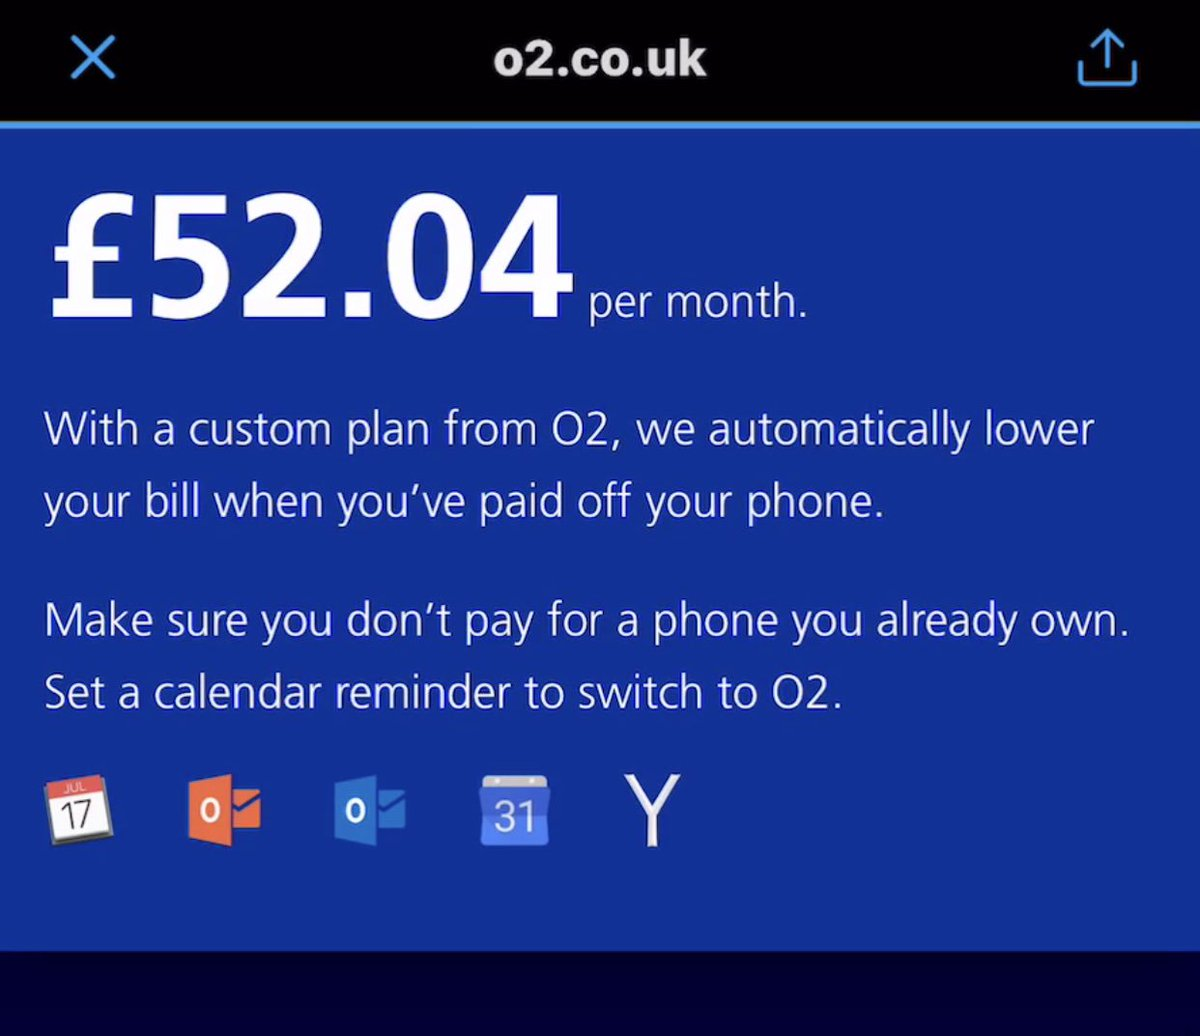 O2 in the UK on Twitter: